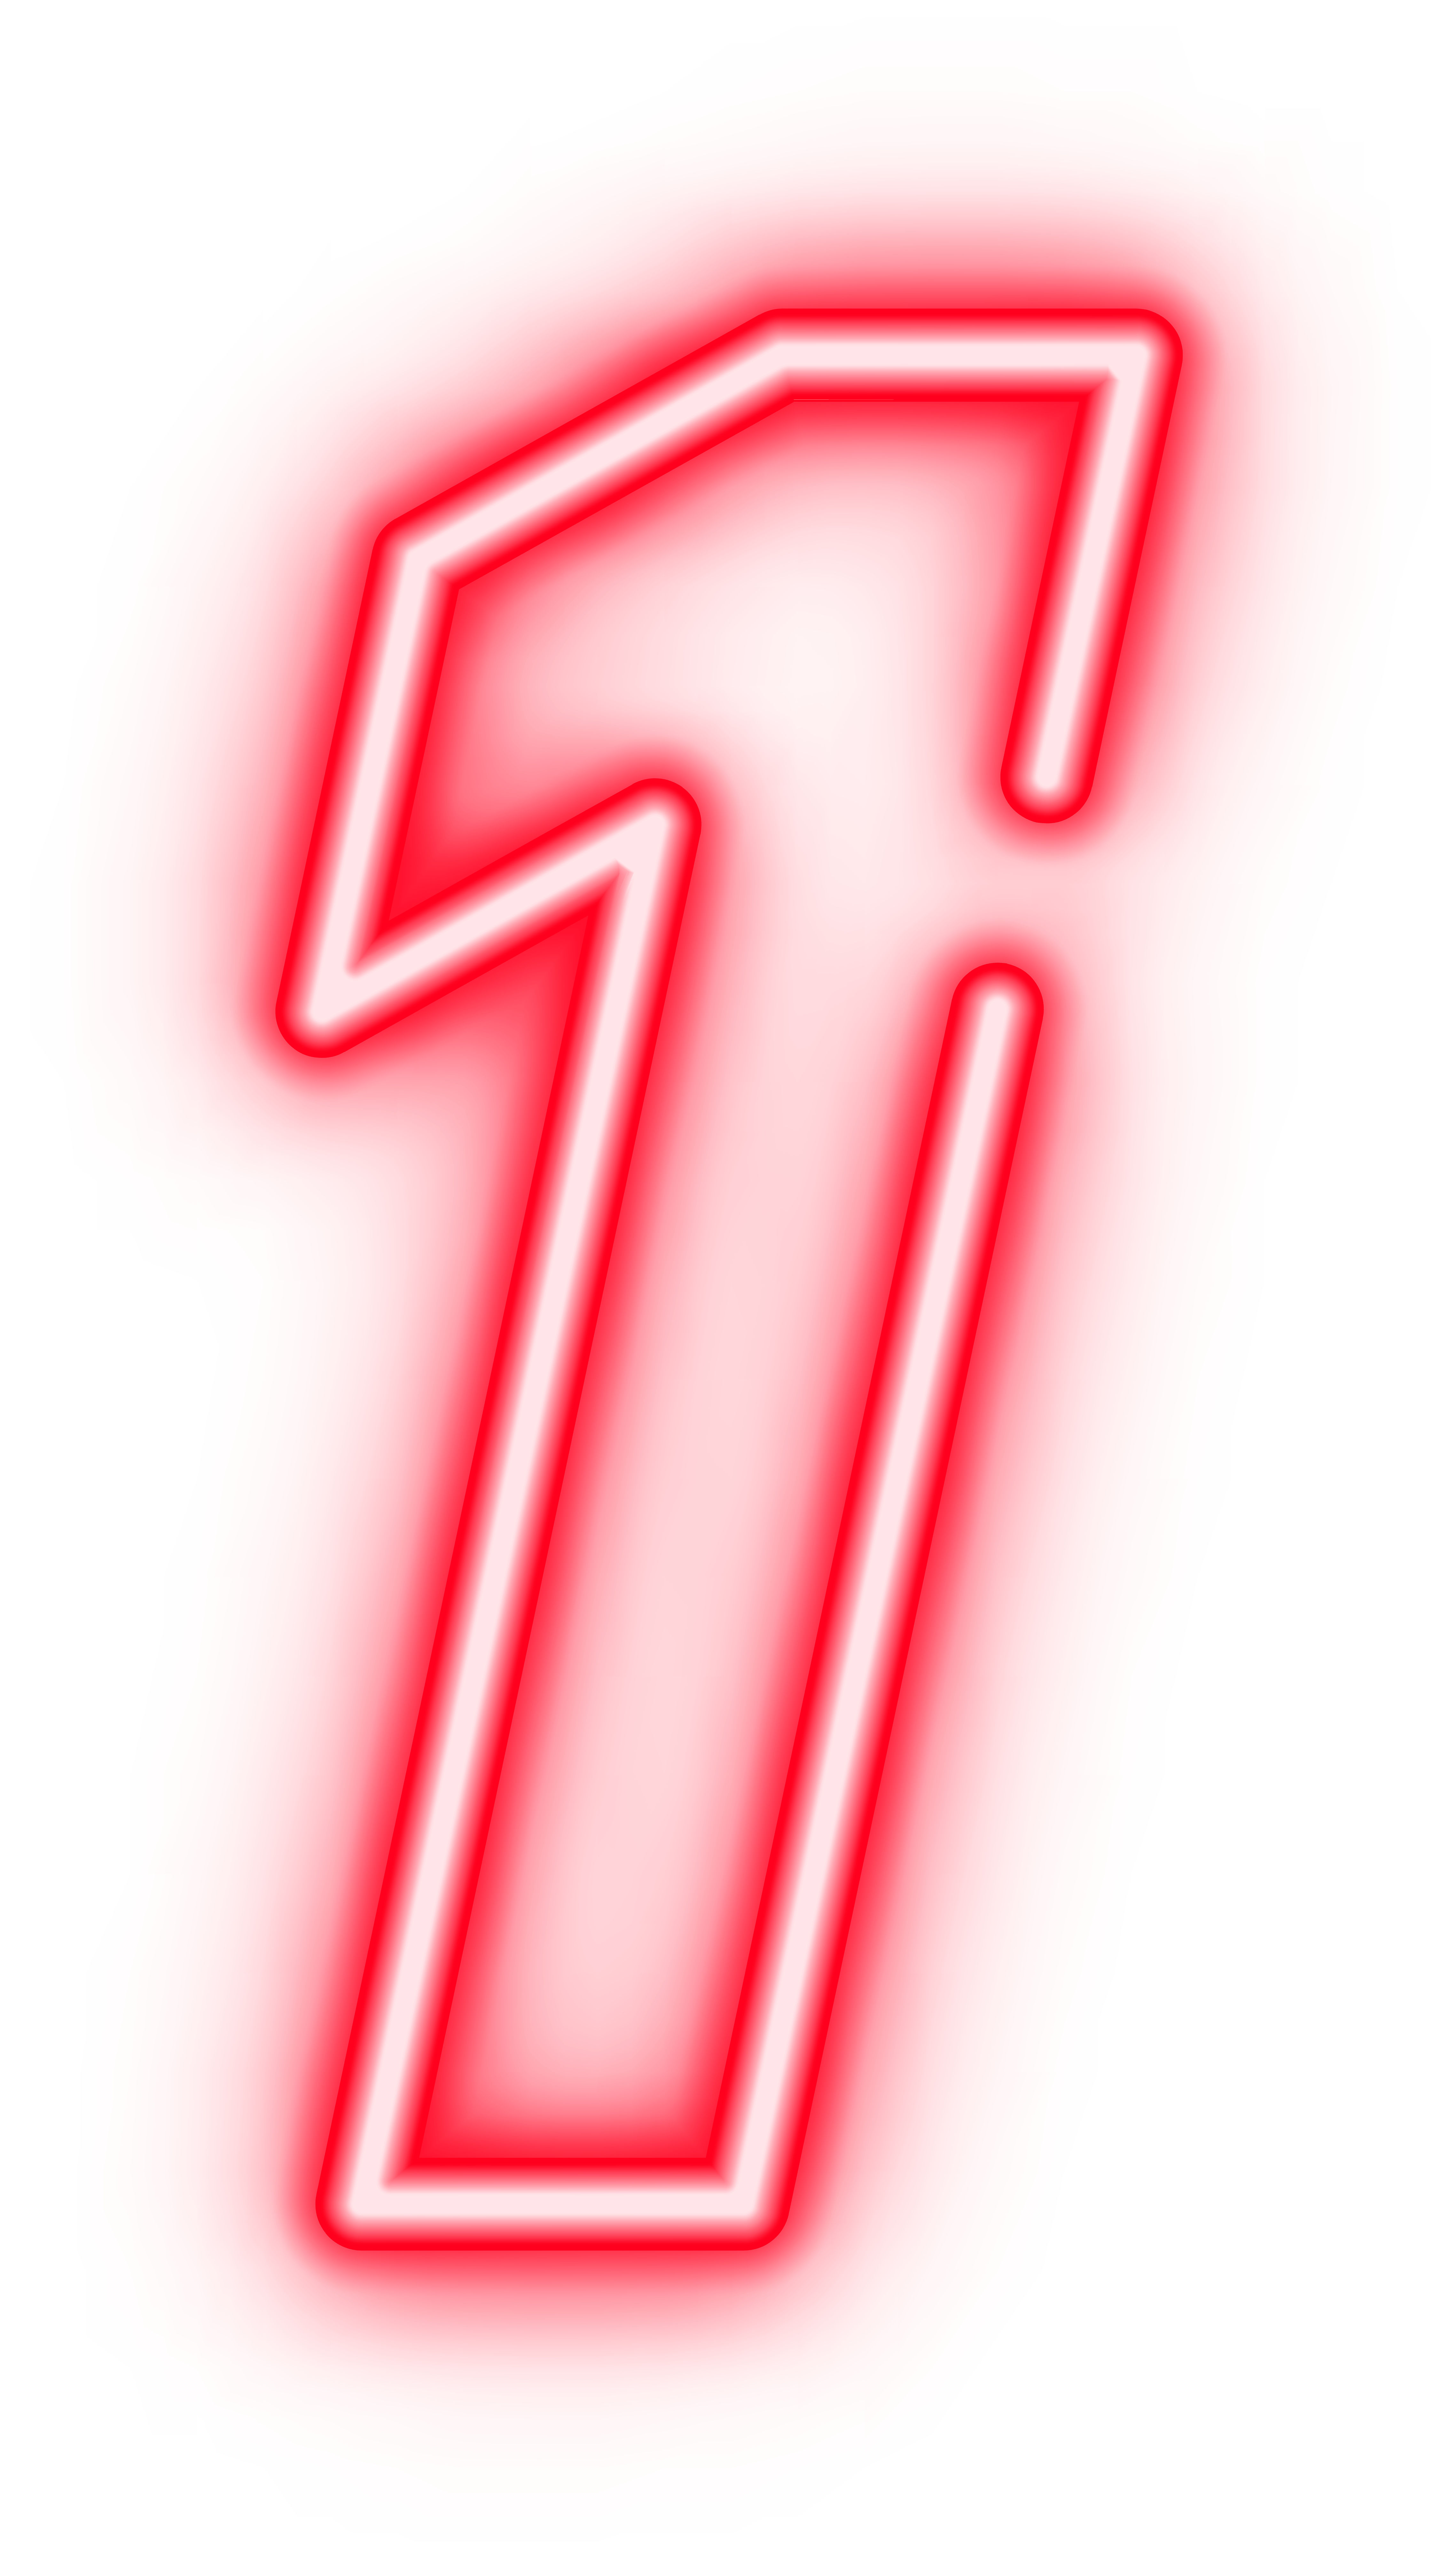 One Red Neon Transparent PNG Clip Art Image.